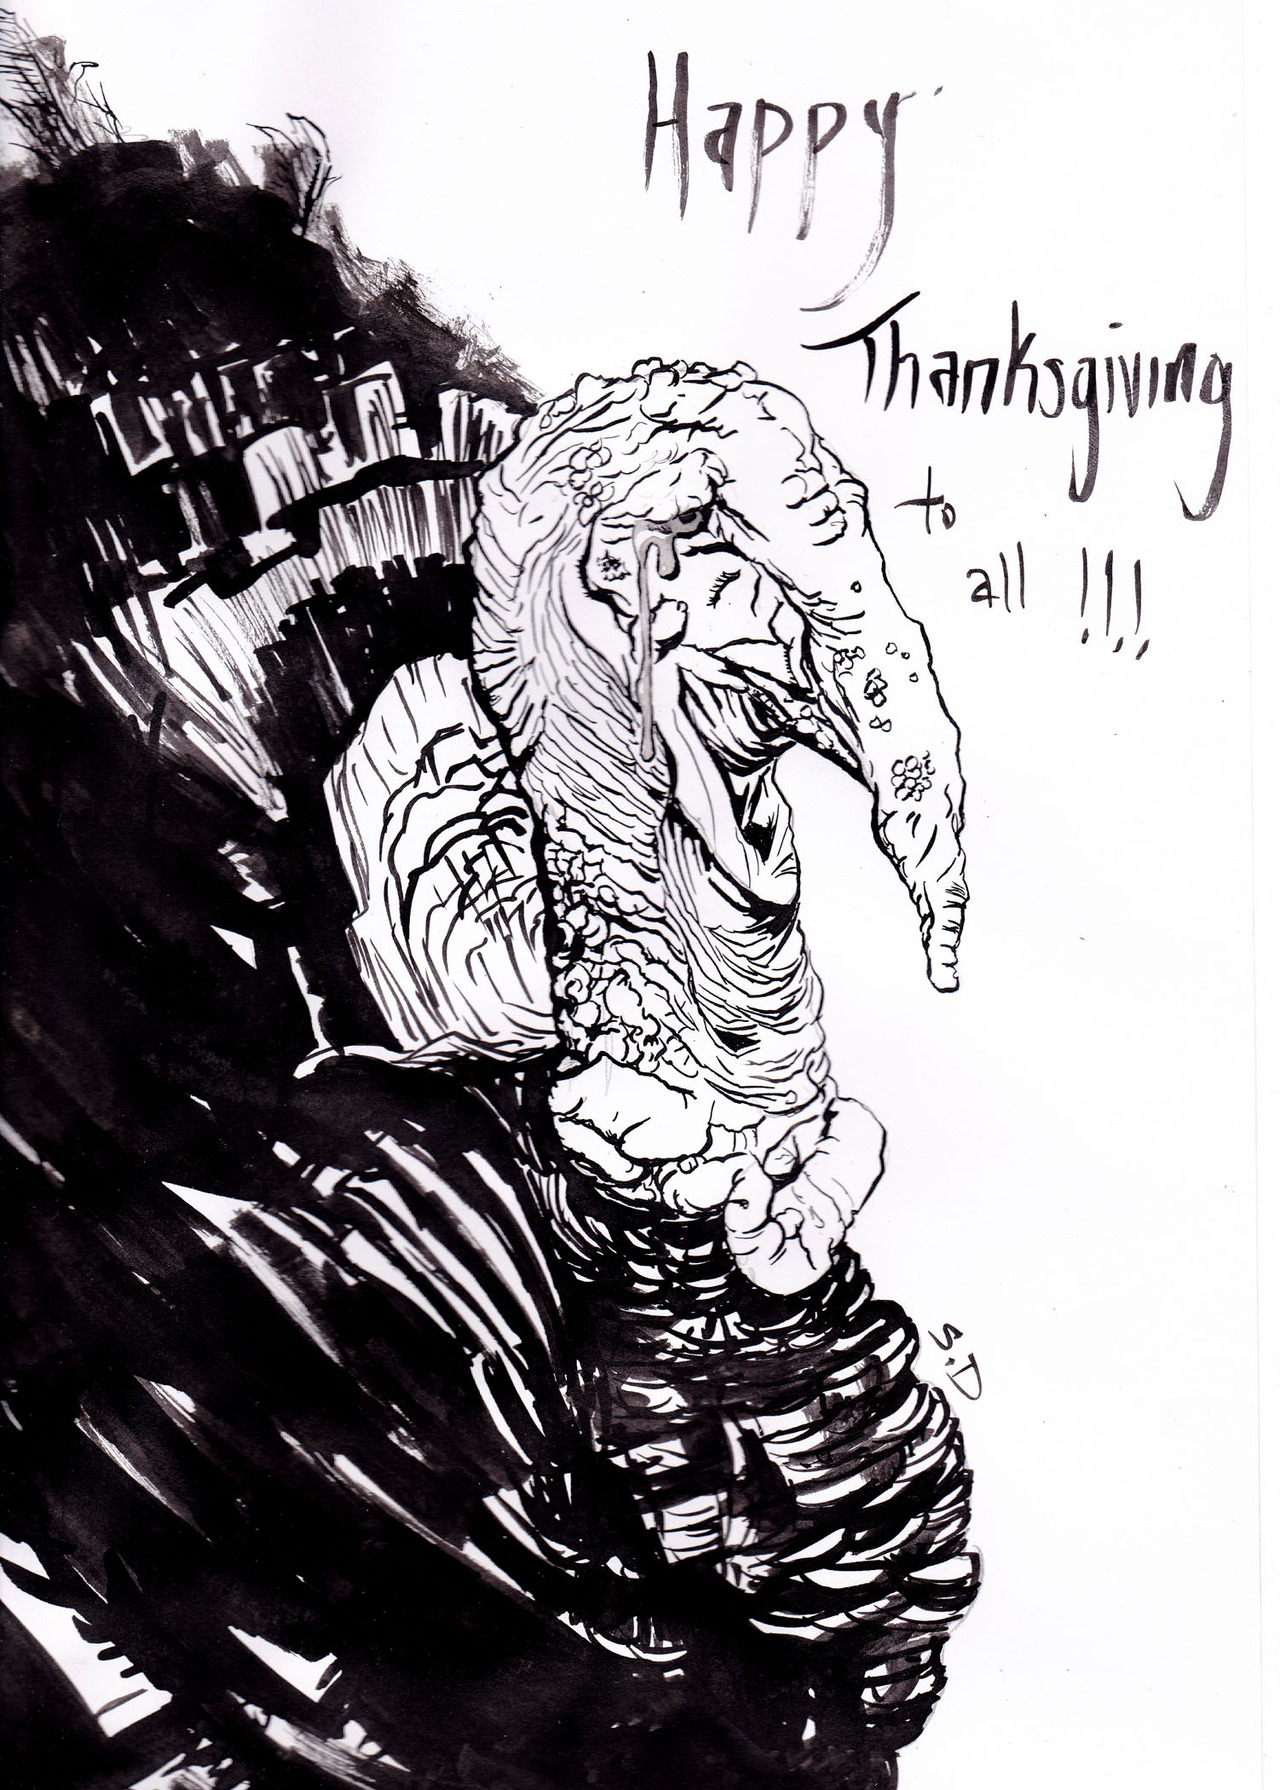 A quick sketch to say Happy Turkey Day to all!!